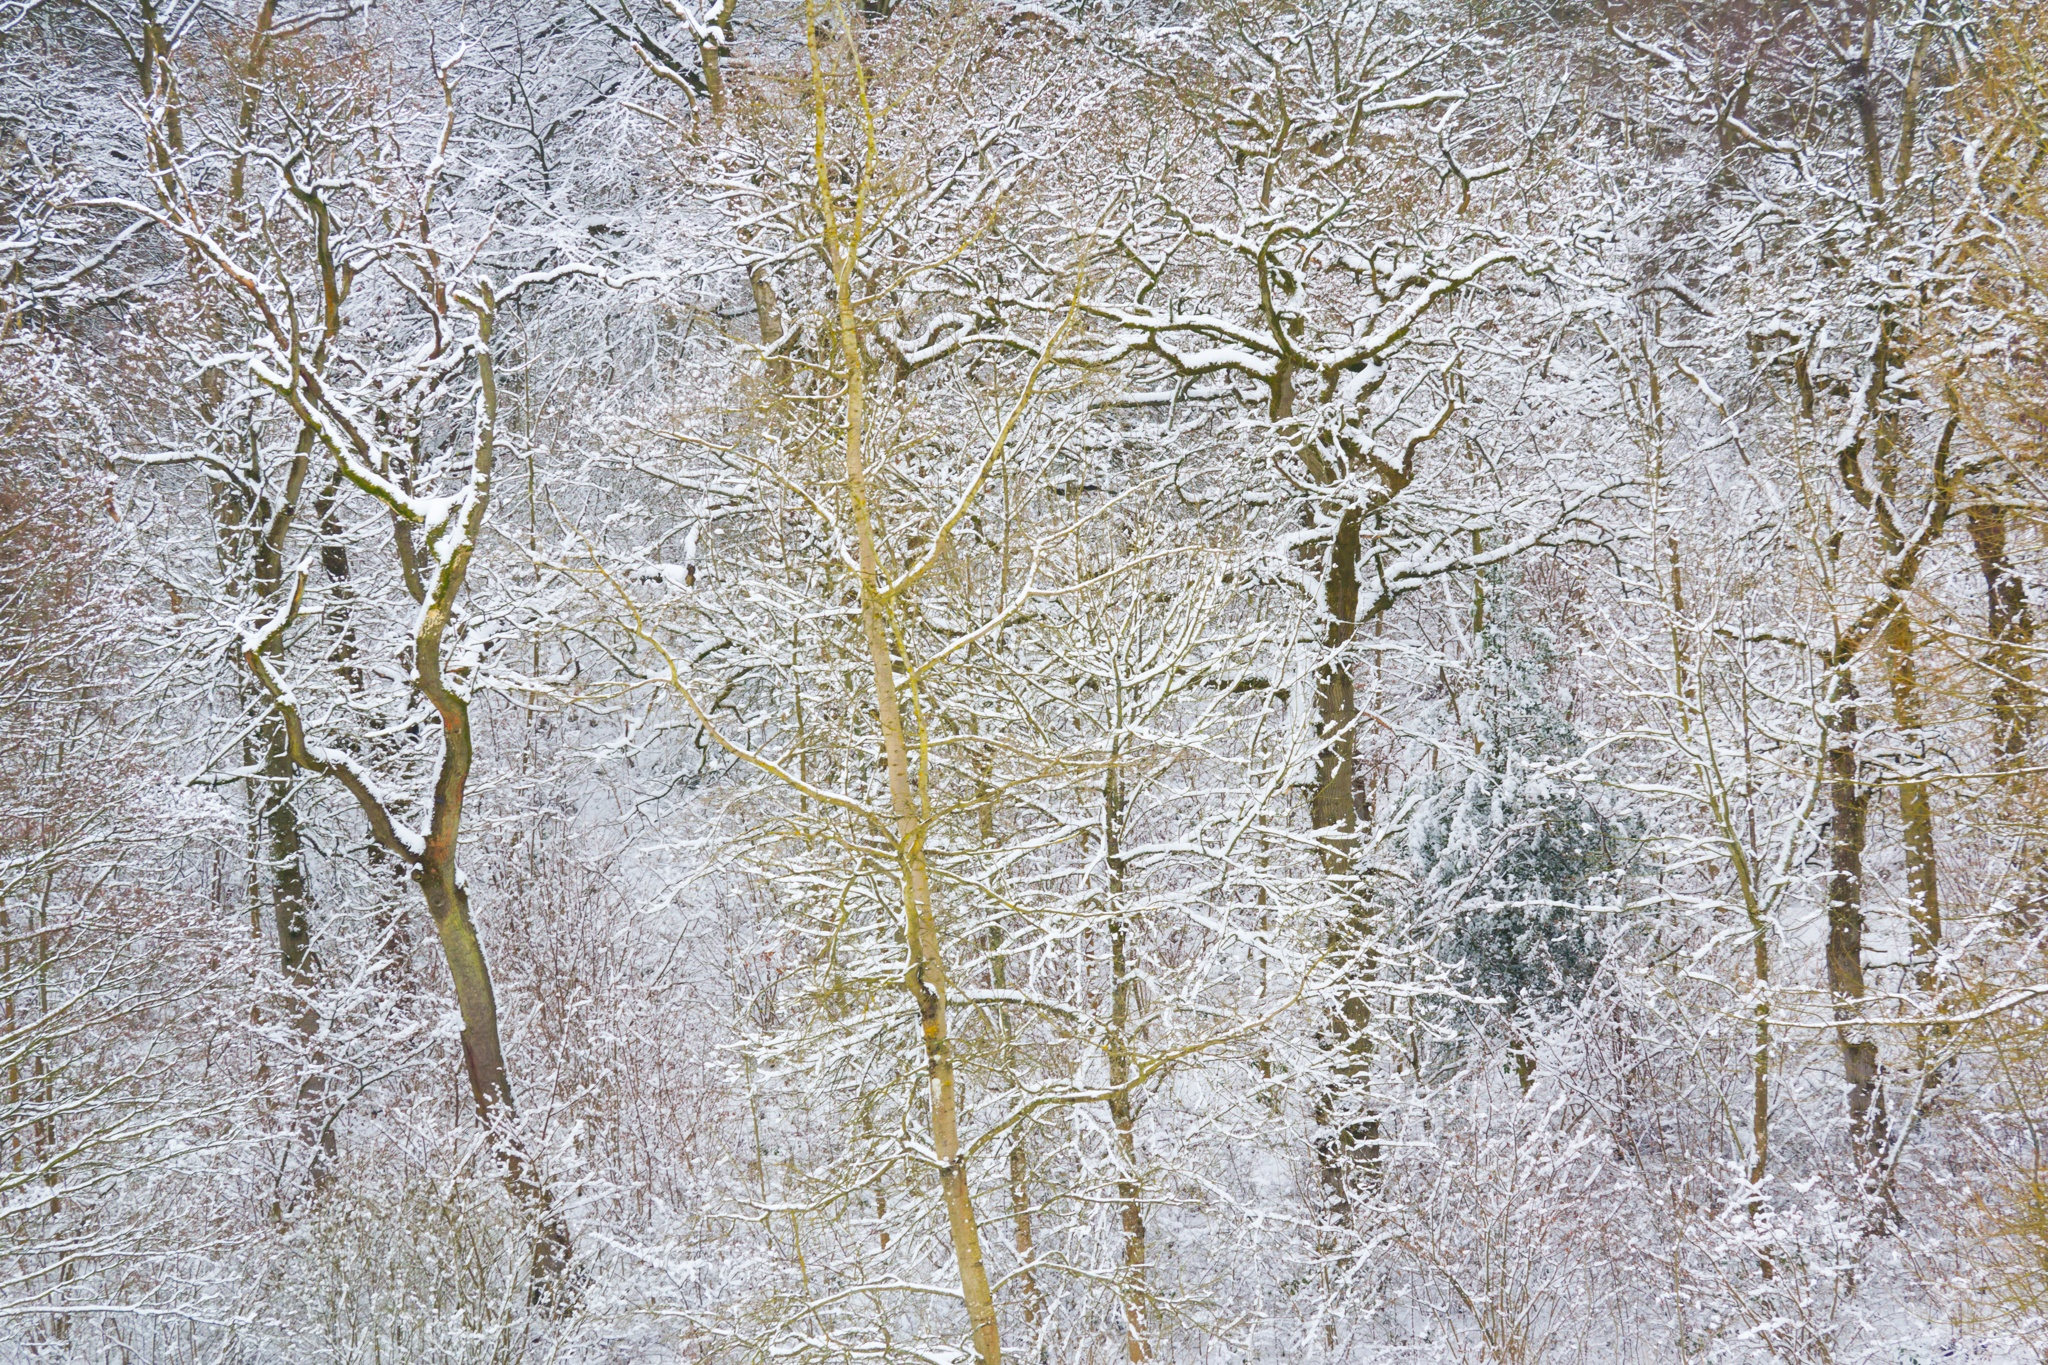 Frozen Tree Abstract by Anthony_Mitchell